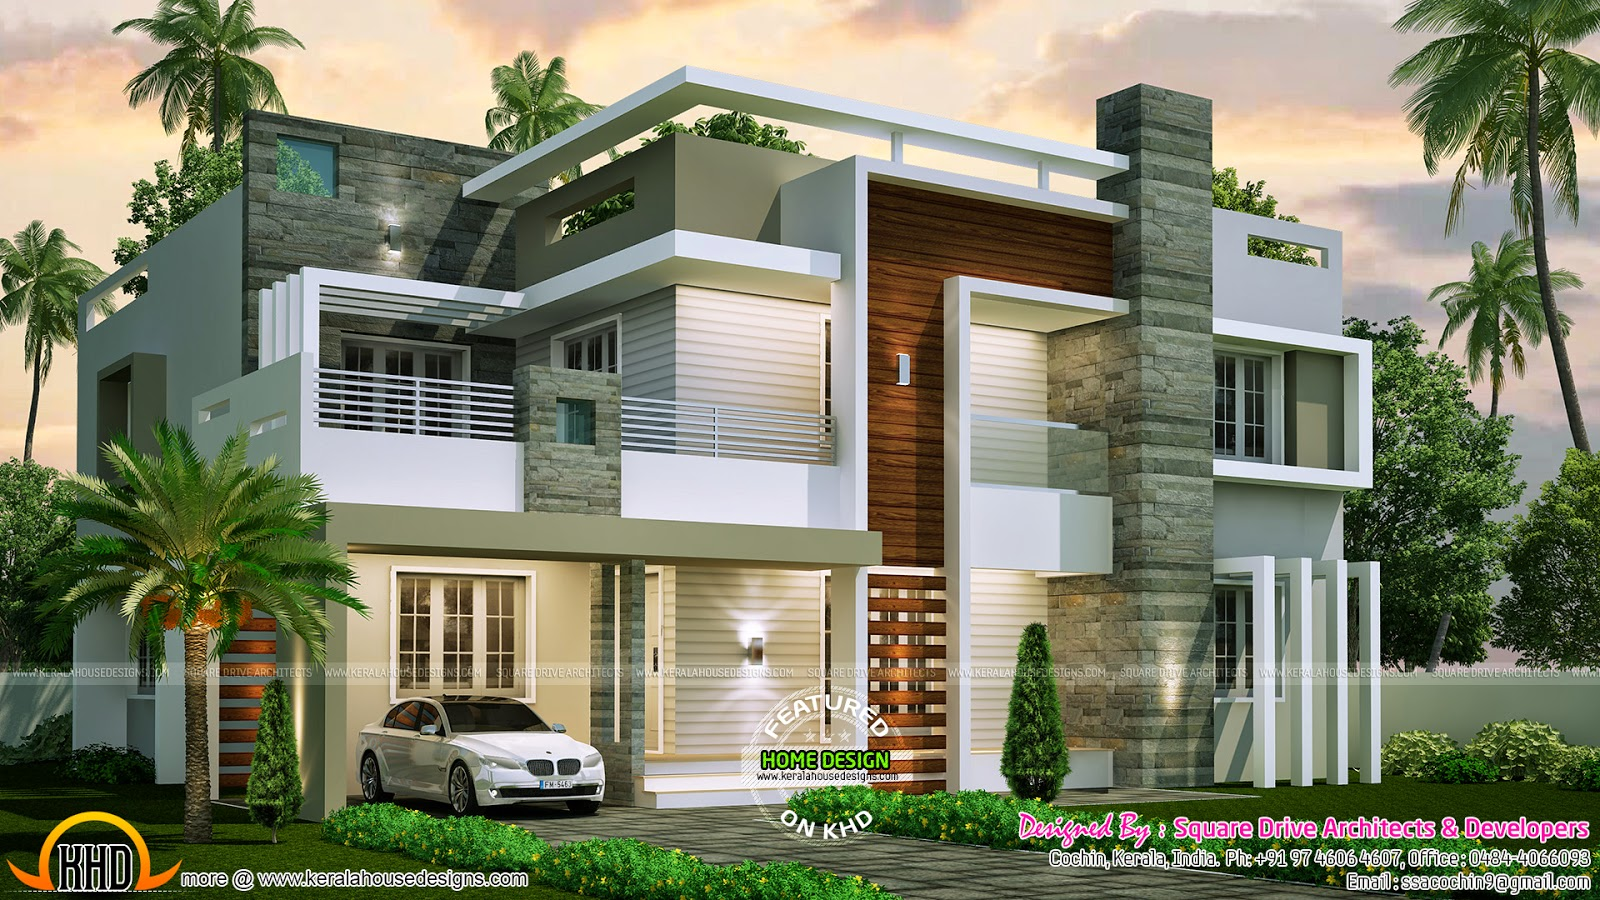 4 bedroom contemporary home design kerala home design for Modern house plans and designs